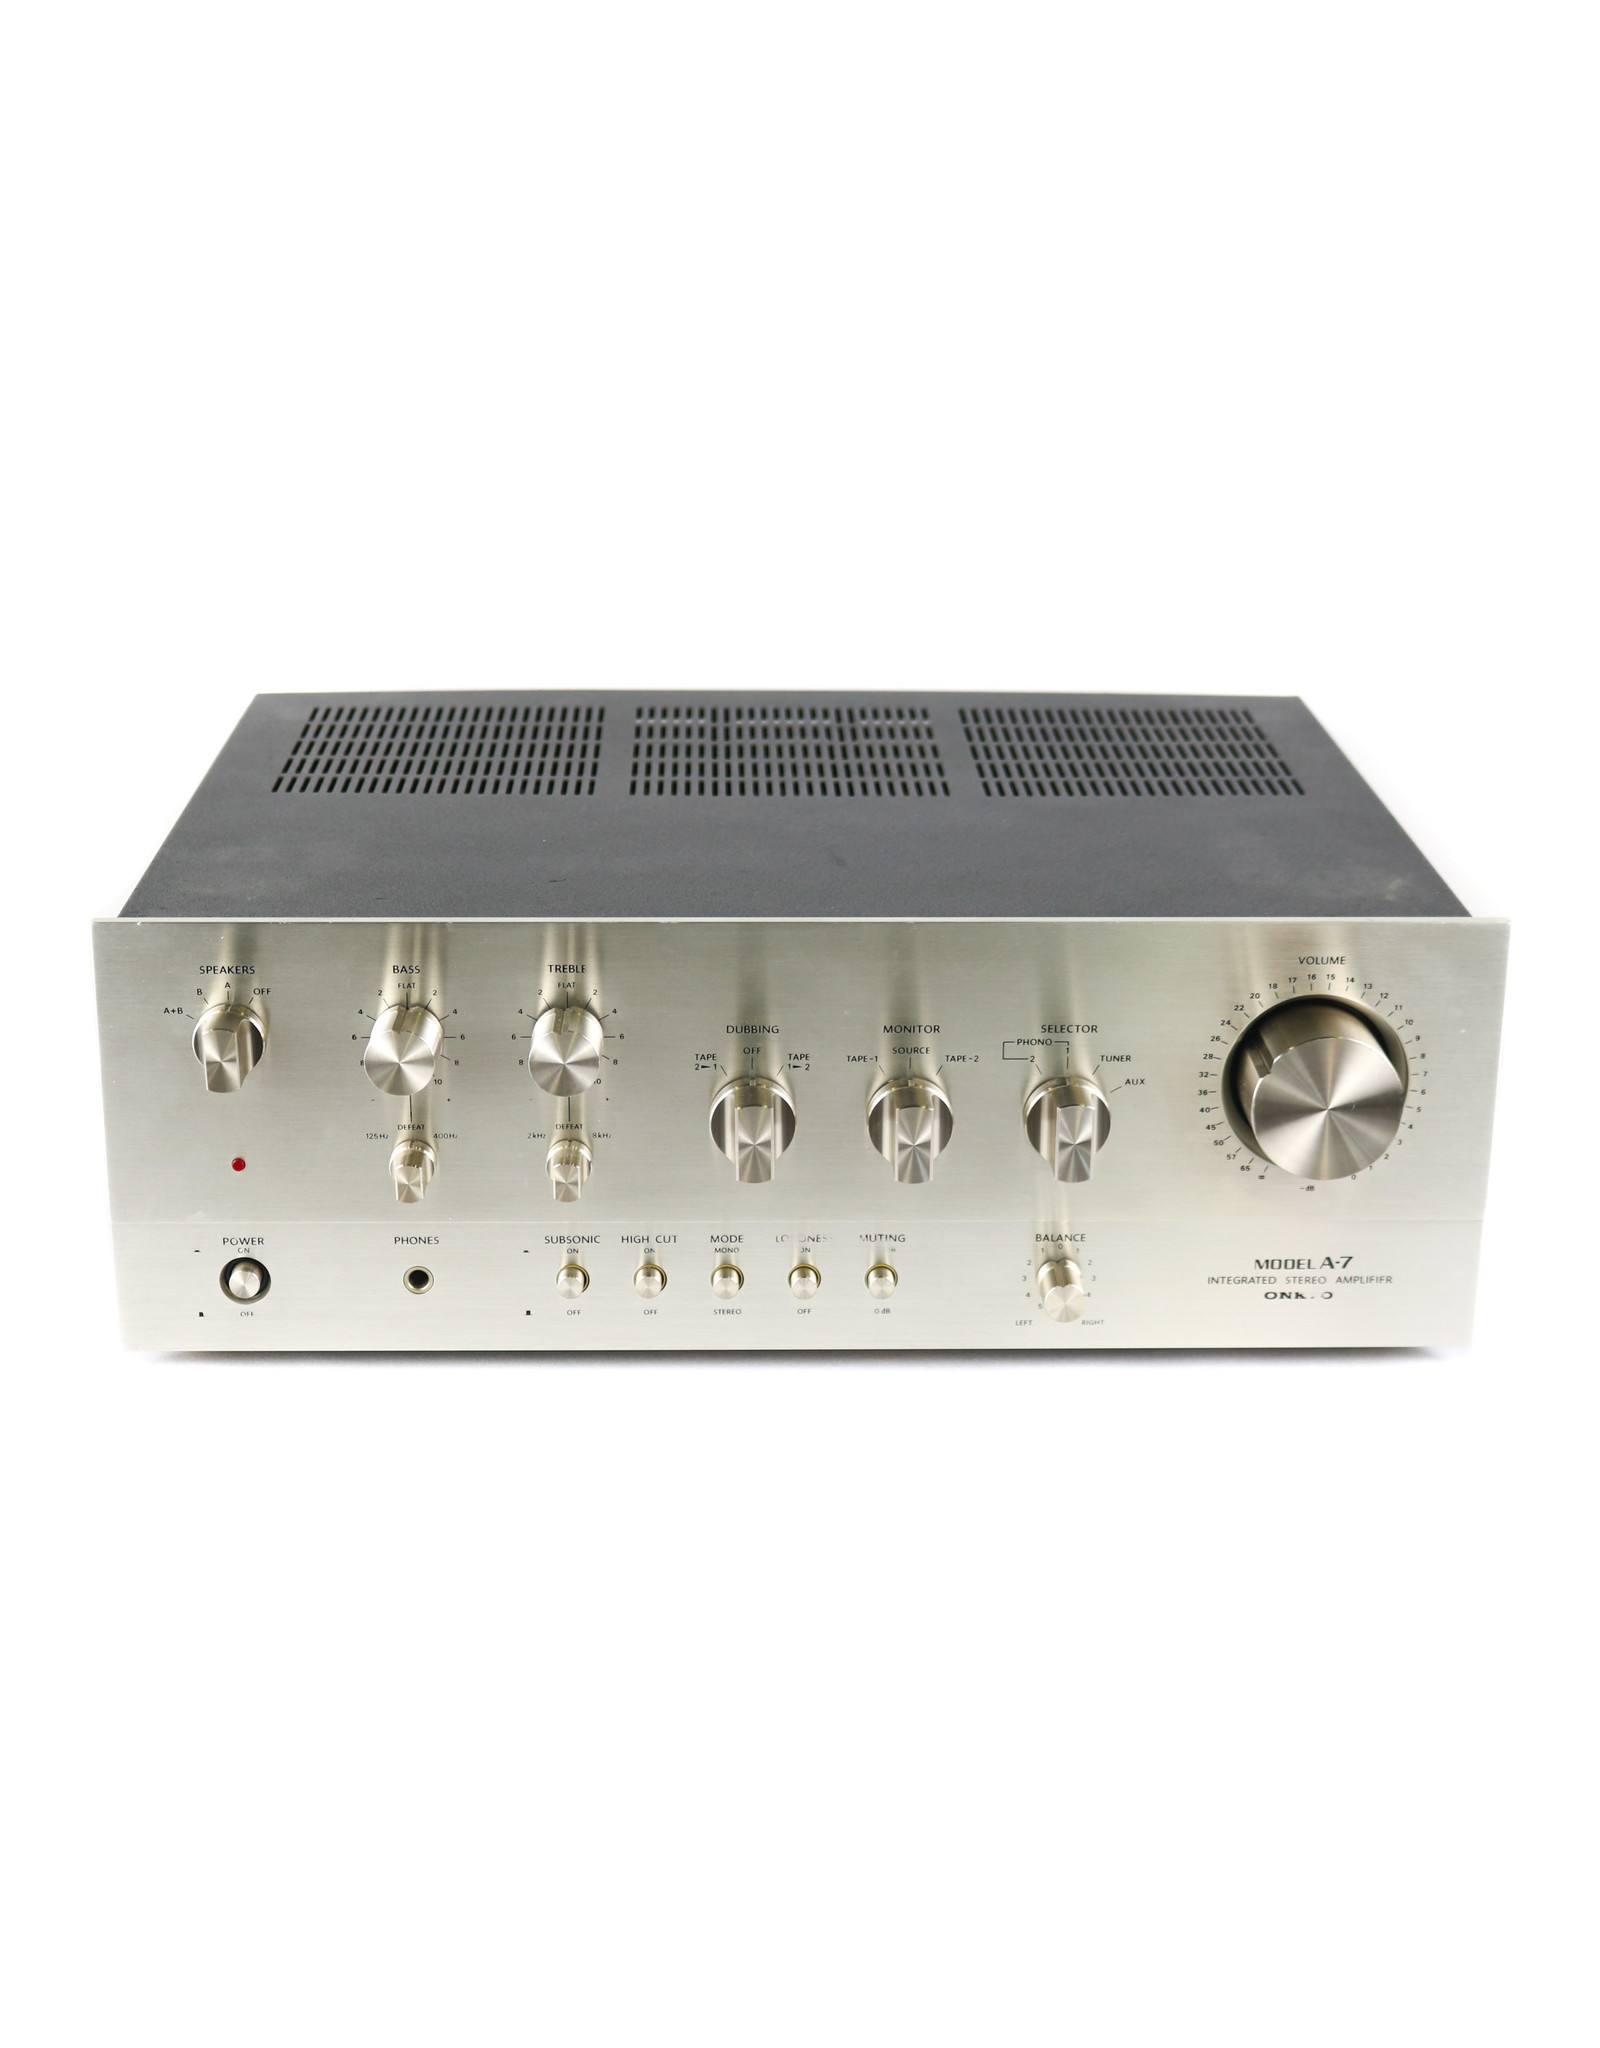 Onkyo Onkyo A-7 Integrated Amp USED